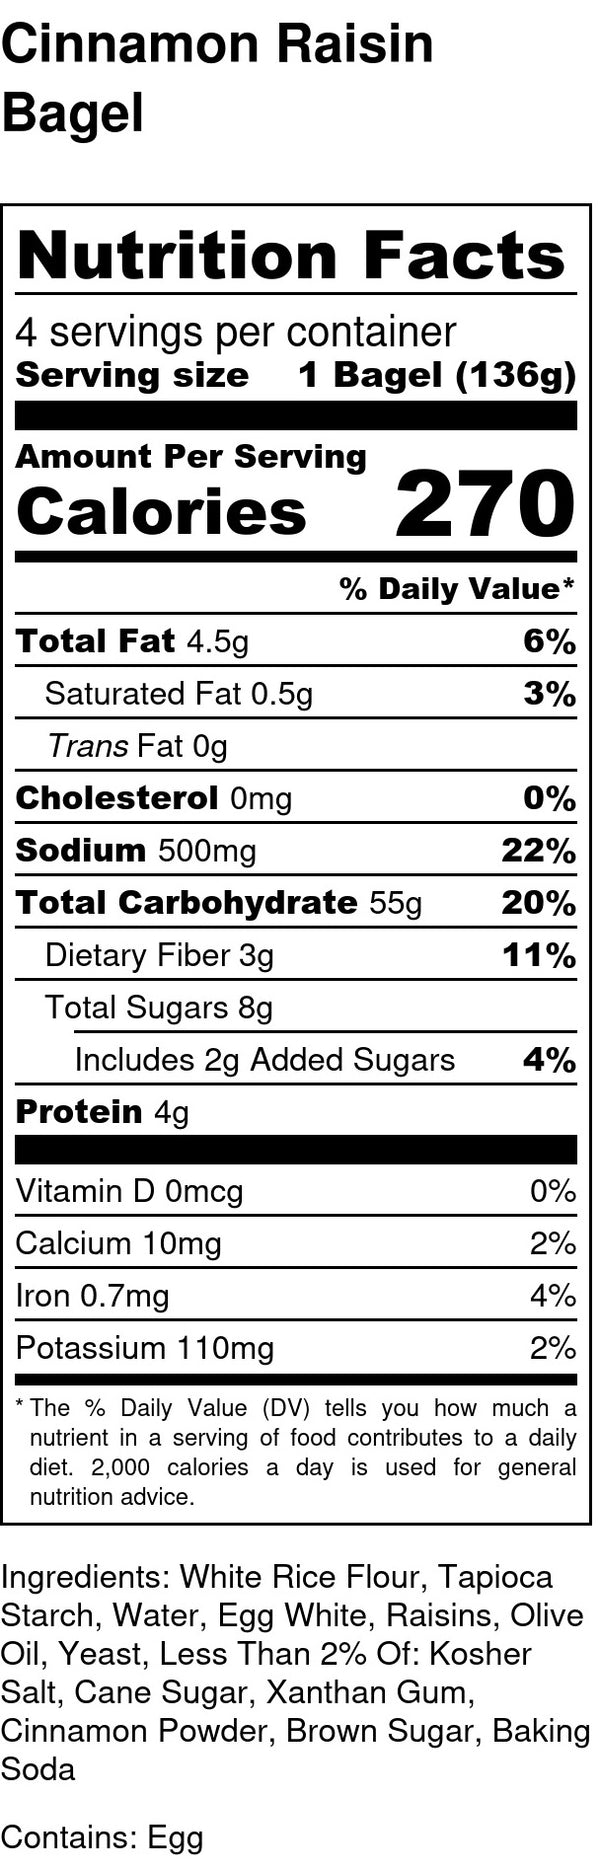 nutrition facts for gluten free and dairy free cinnamon raisin bagels contains eggs